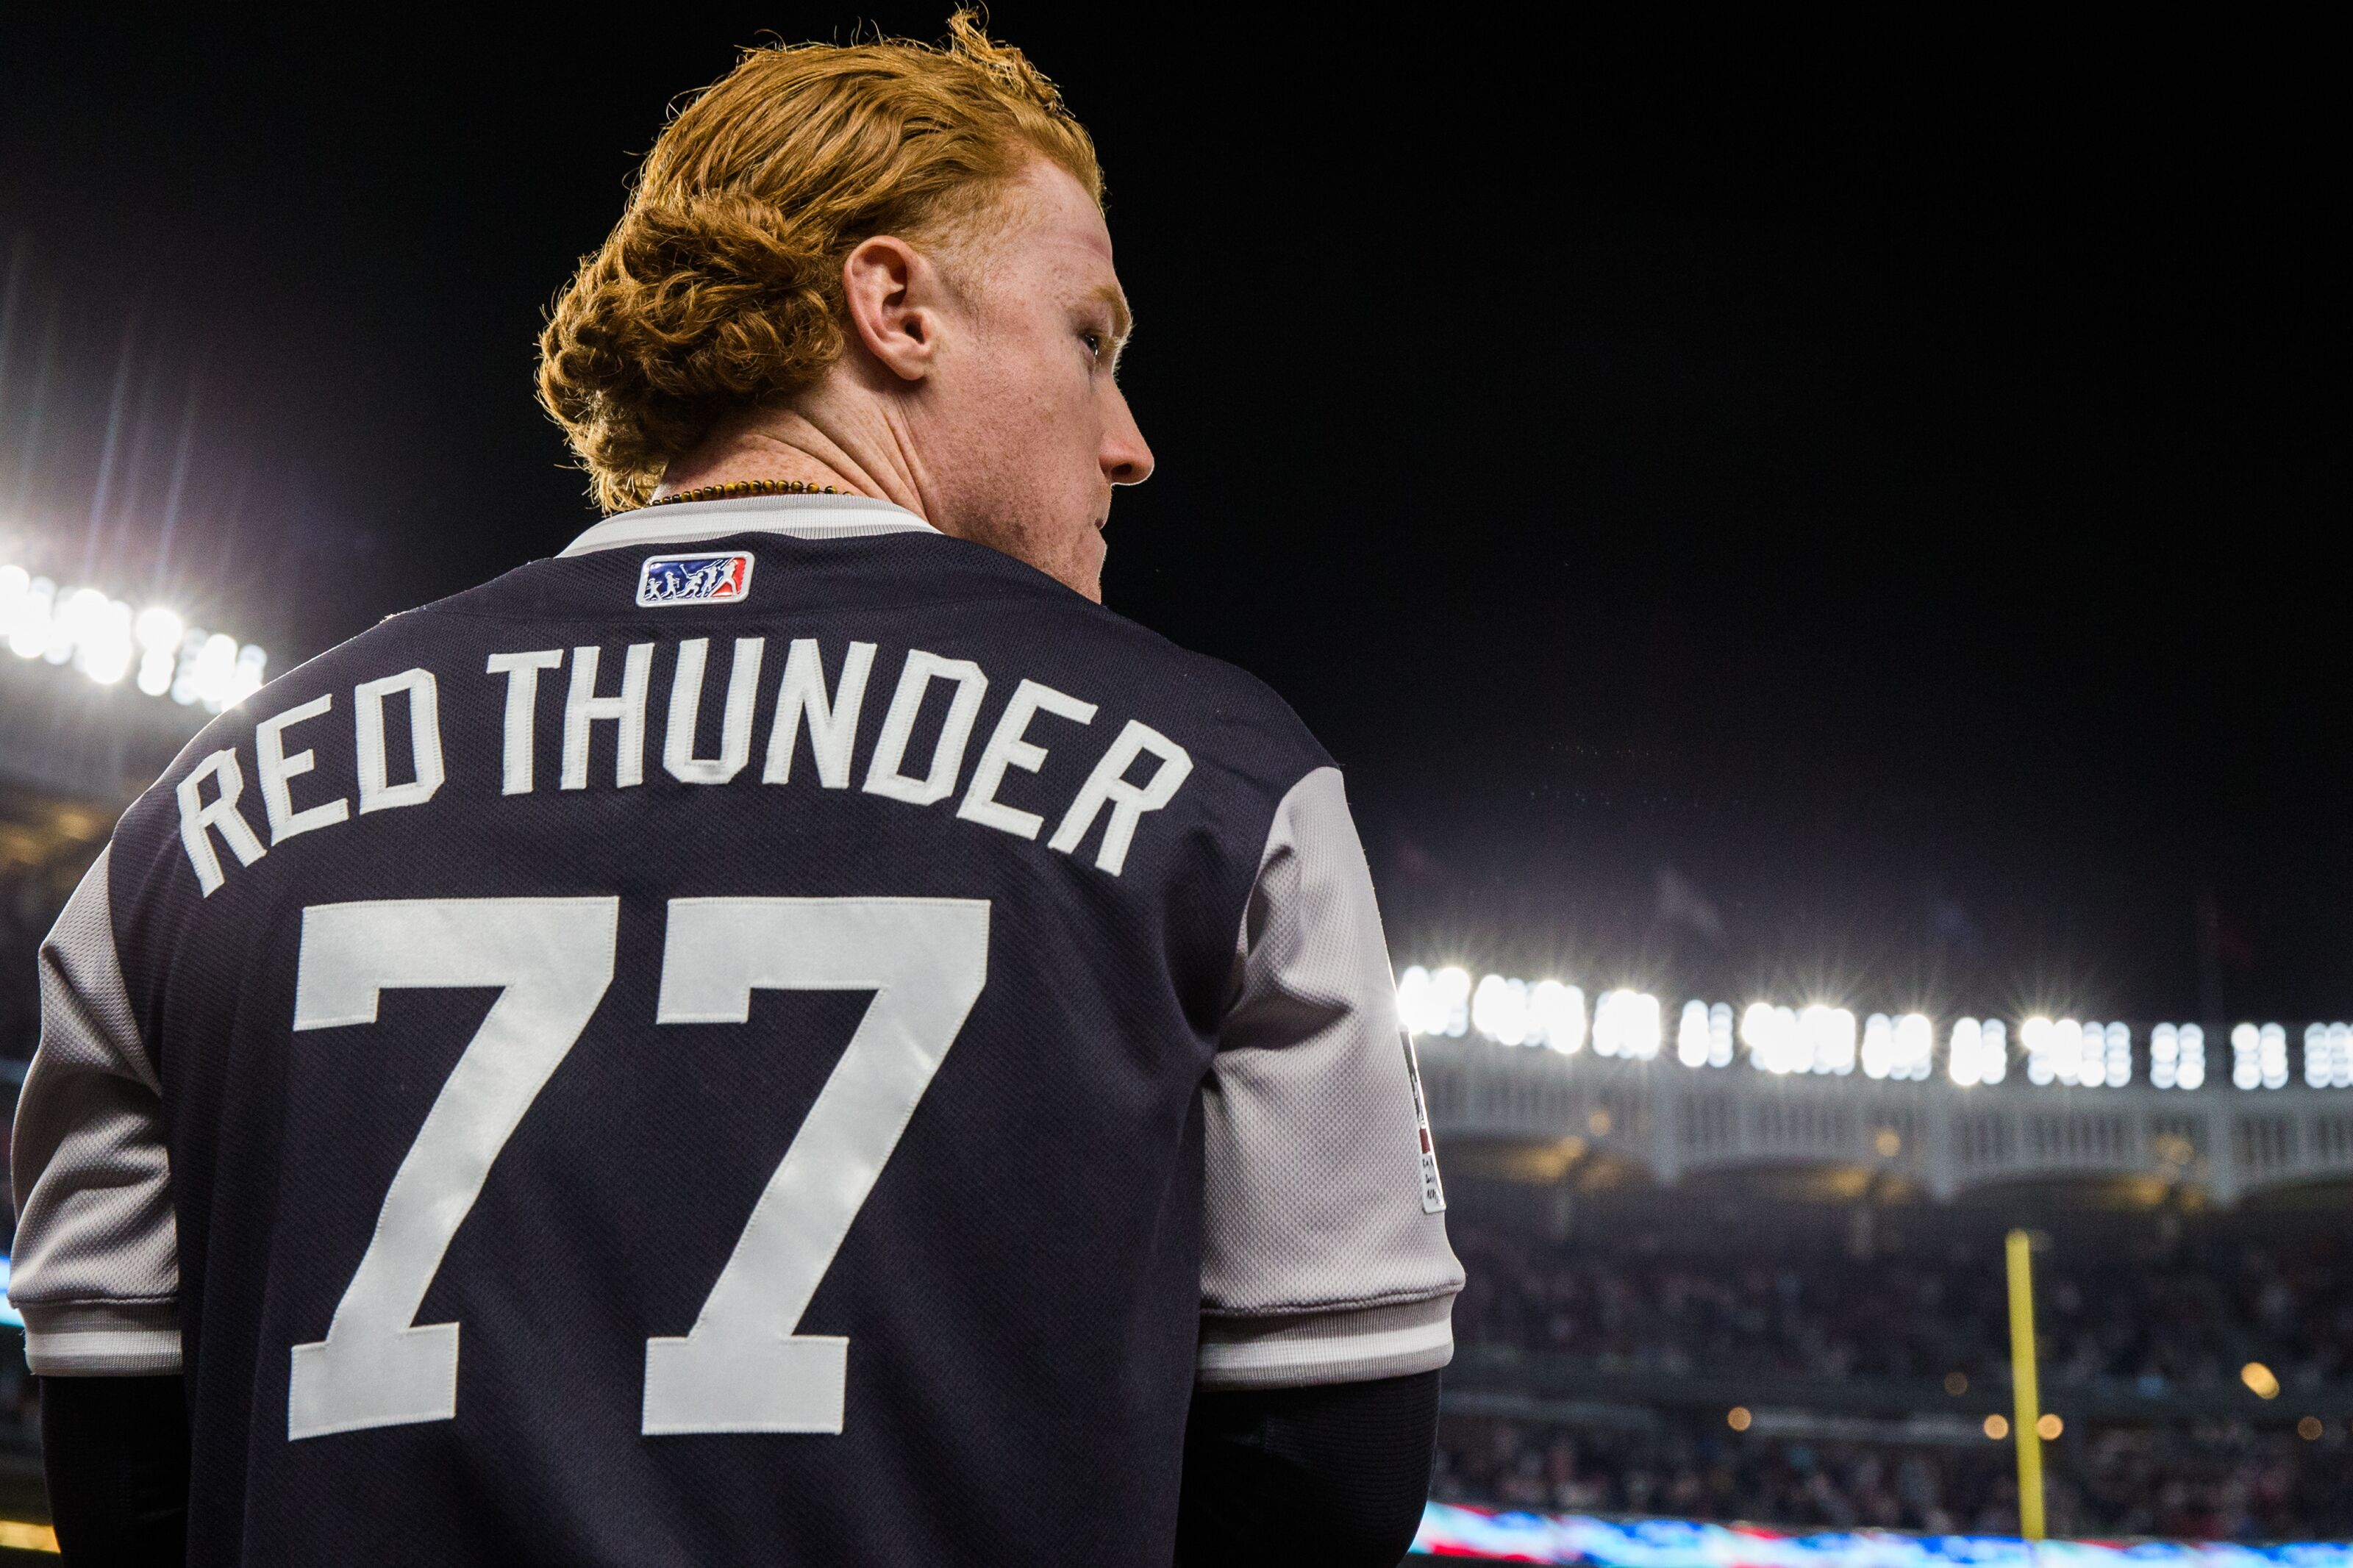 New York Yankees: Clint Frazier taunts critics after defensive play